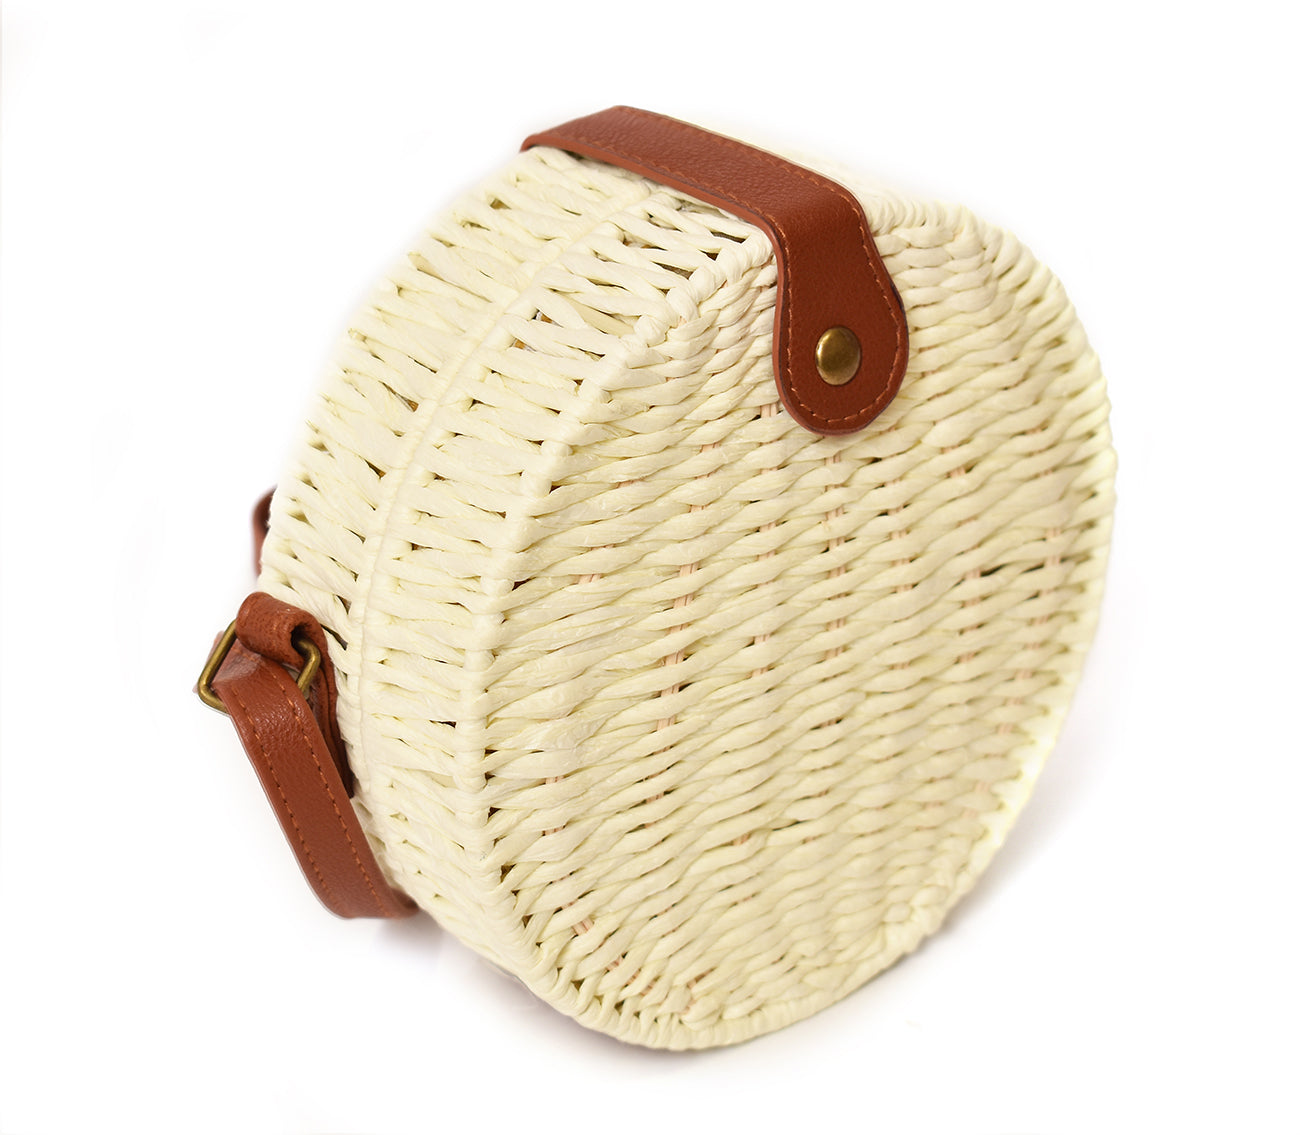 1950s Handbags, Purses, and Evening Bag Styles Charming Charlie Straw Canteen Crossbody Bag in Ivory $34.00 AT vintagedancer.com